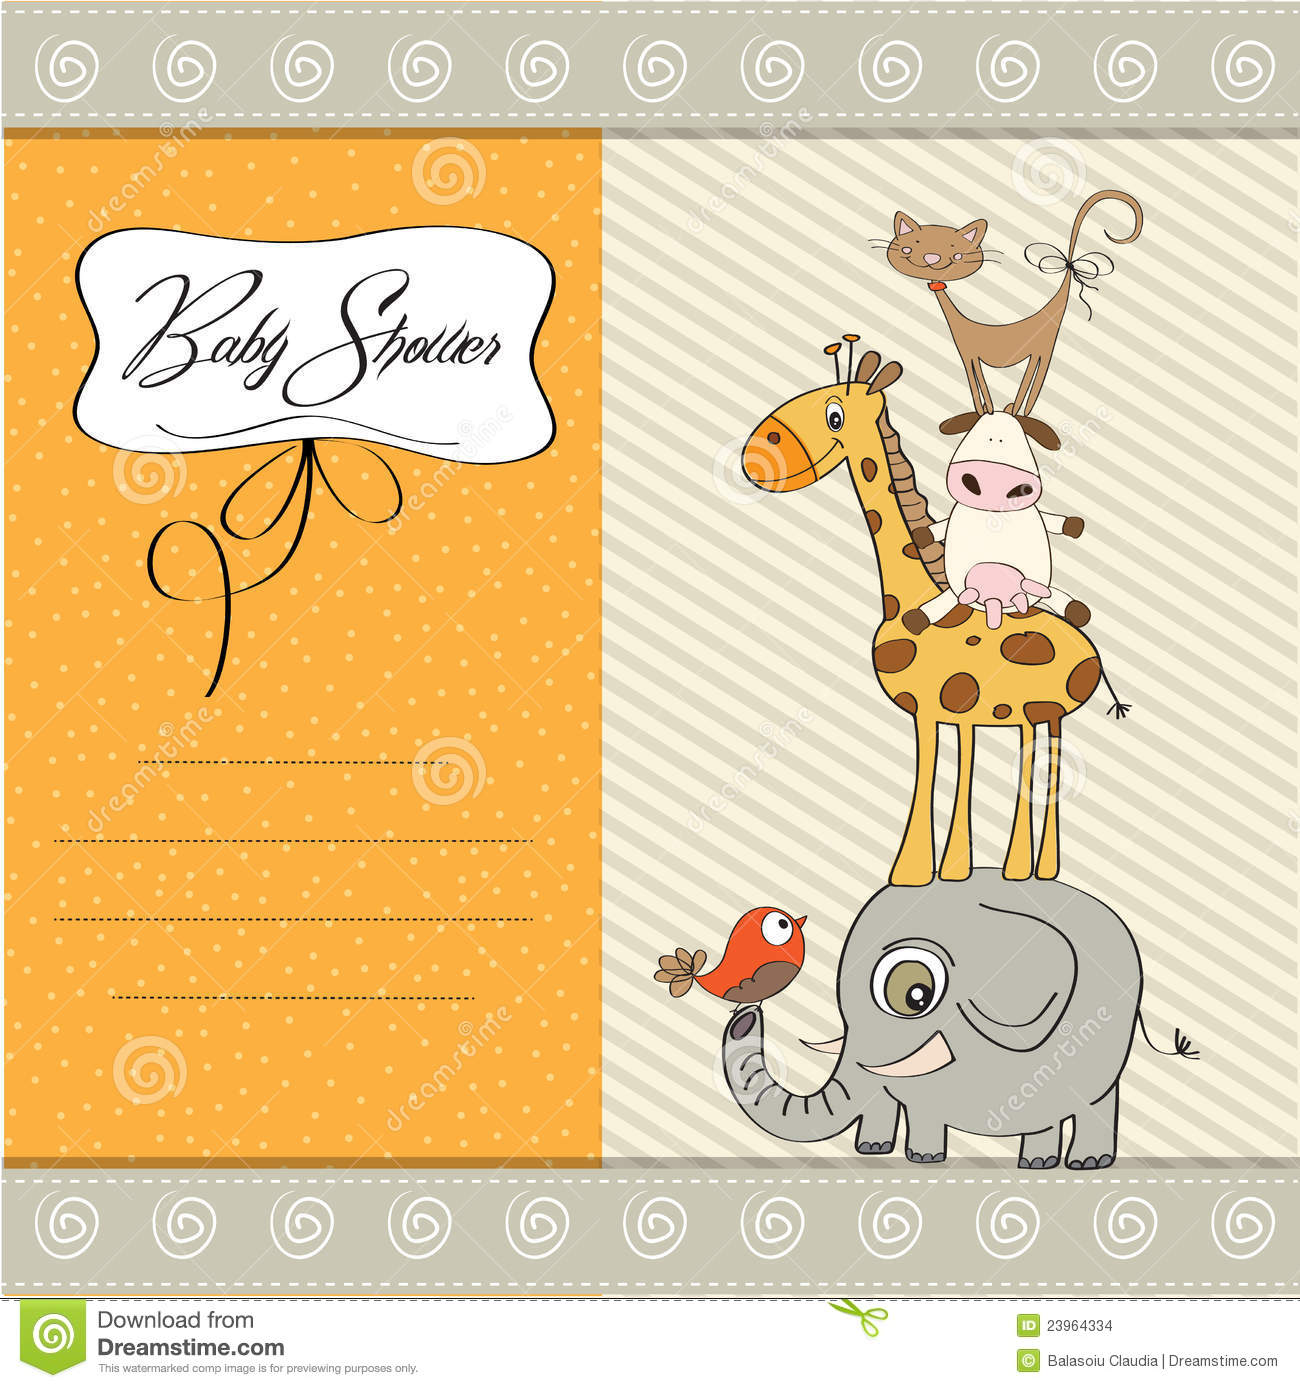 Baby Shower Template Card Stock Images - Image: 23964334